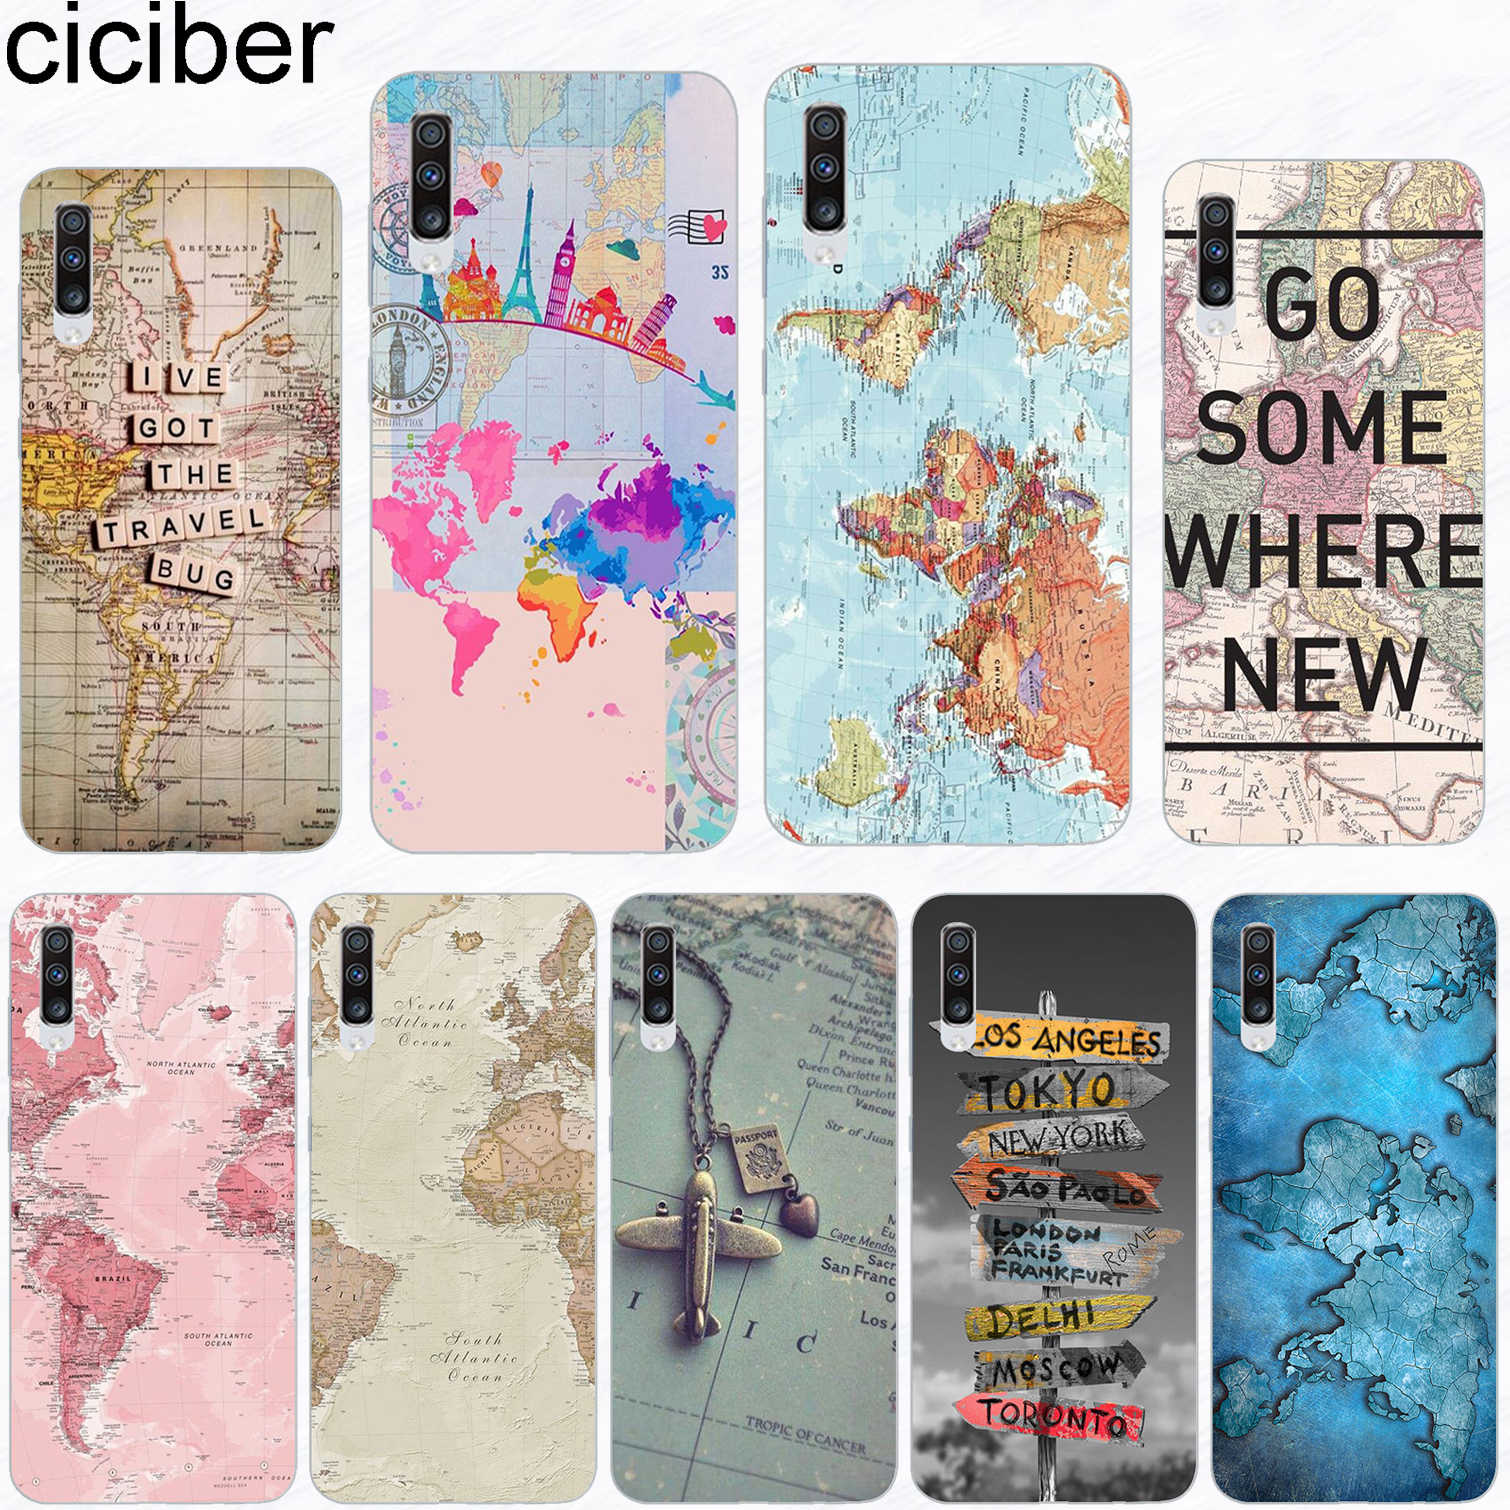 ciciber Phone Case for Samsung Galaxy A50 A70 A80 A40 A30 A20 A60 A10 A20e Soft Silicone TPU World Map Travel Cover Fundas Coque